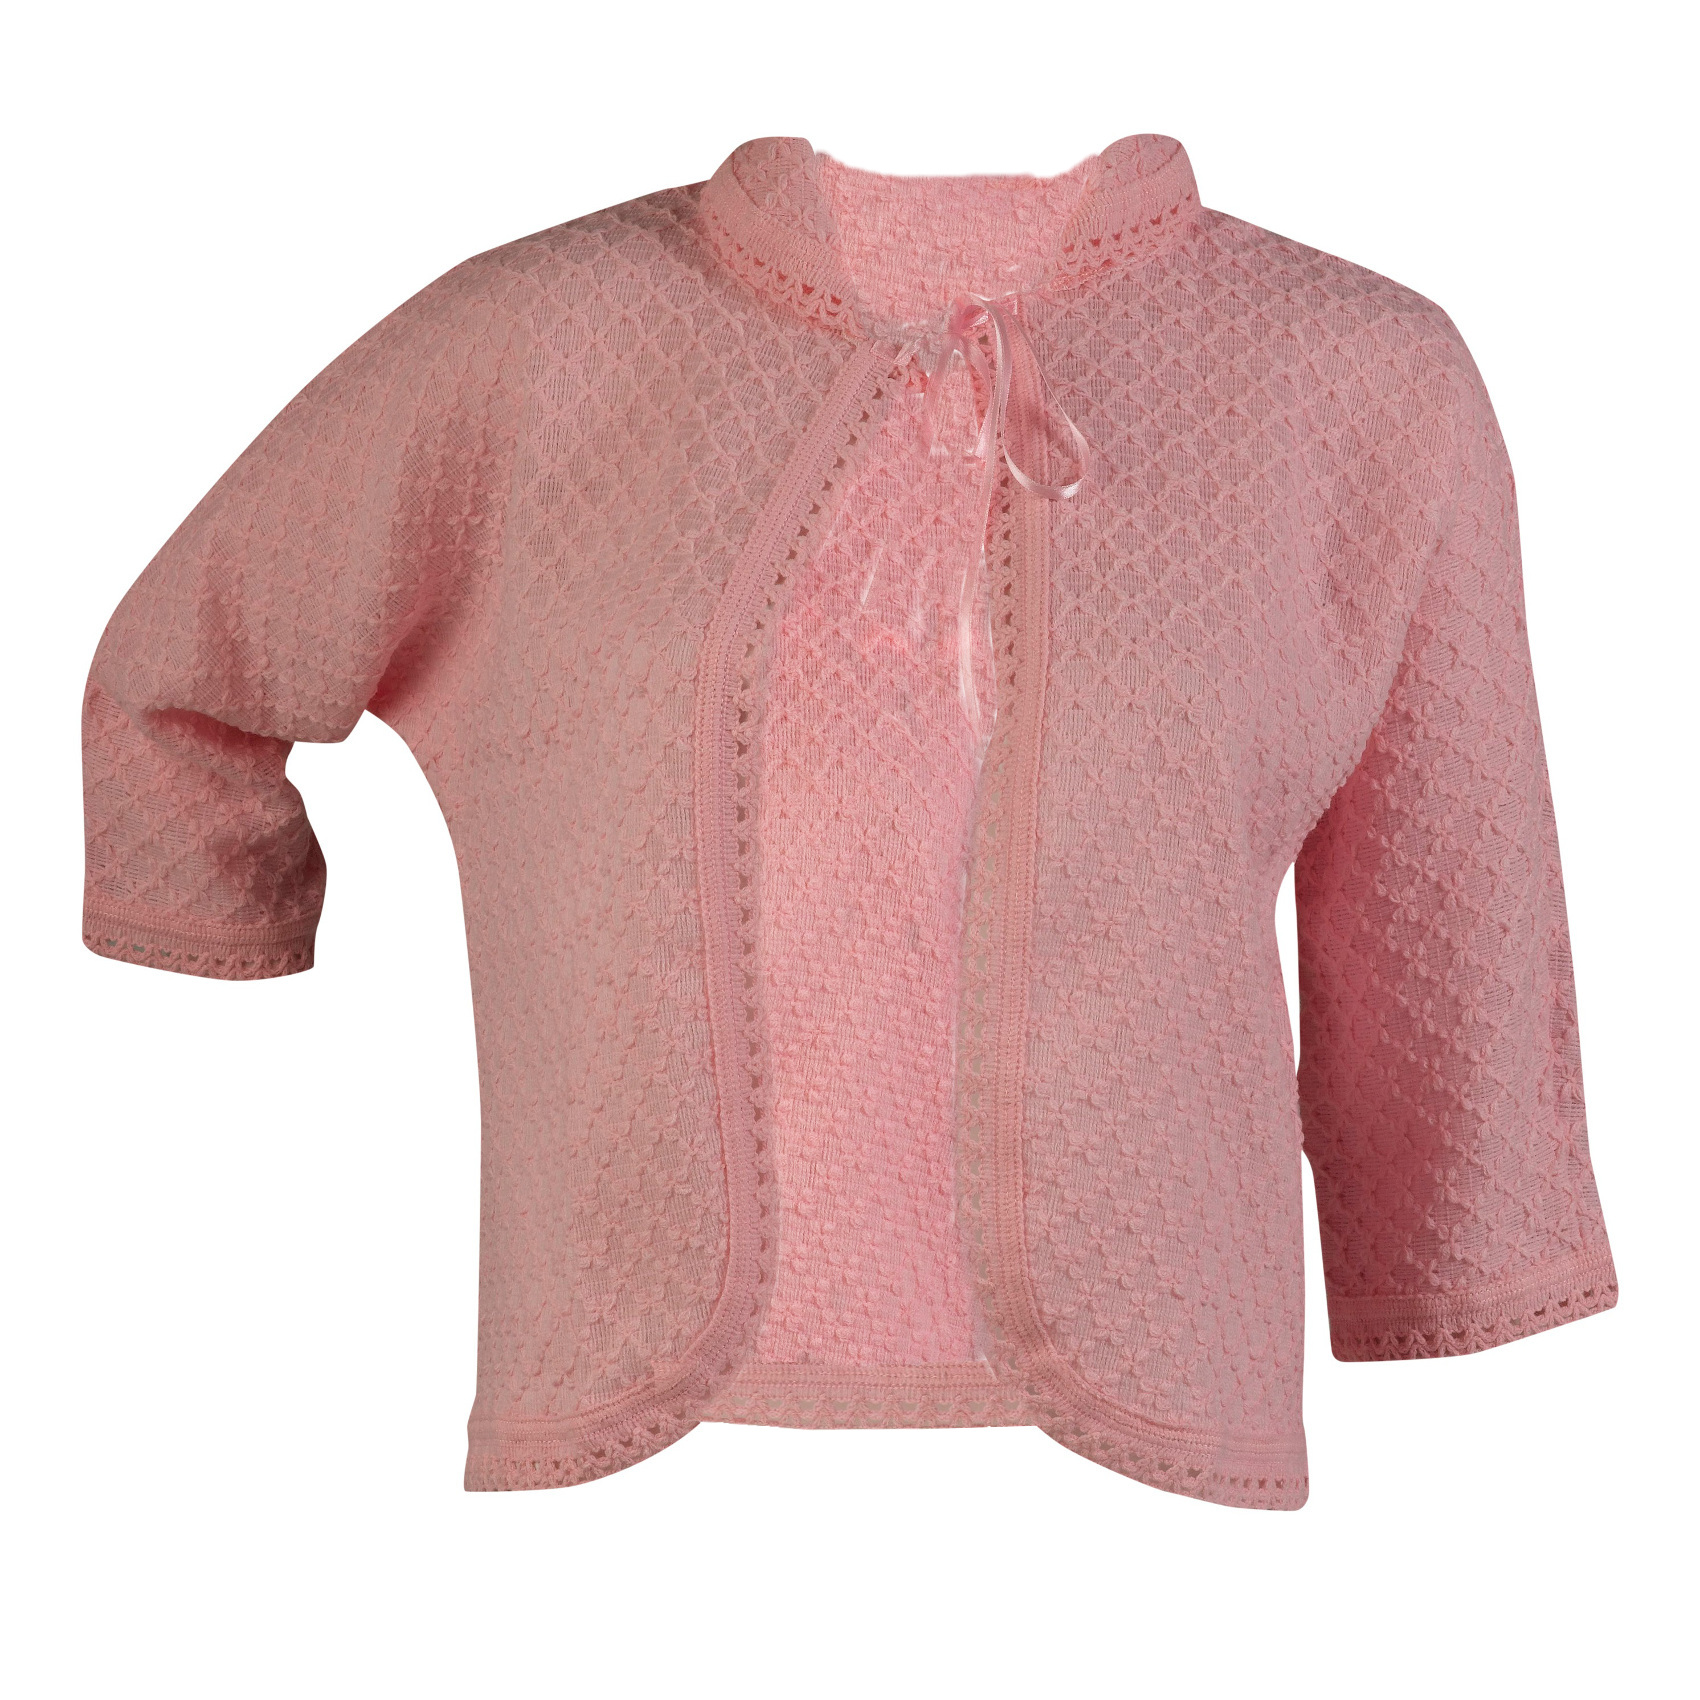 Ladies diamond pattern bed jacket ribbon tie house coat collar these ladies lightweight bed jackets have a diamond pattern throughout with crochet trim a peter pan collar and a ribbon tie for fastening bankloansurffo Image collections